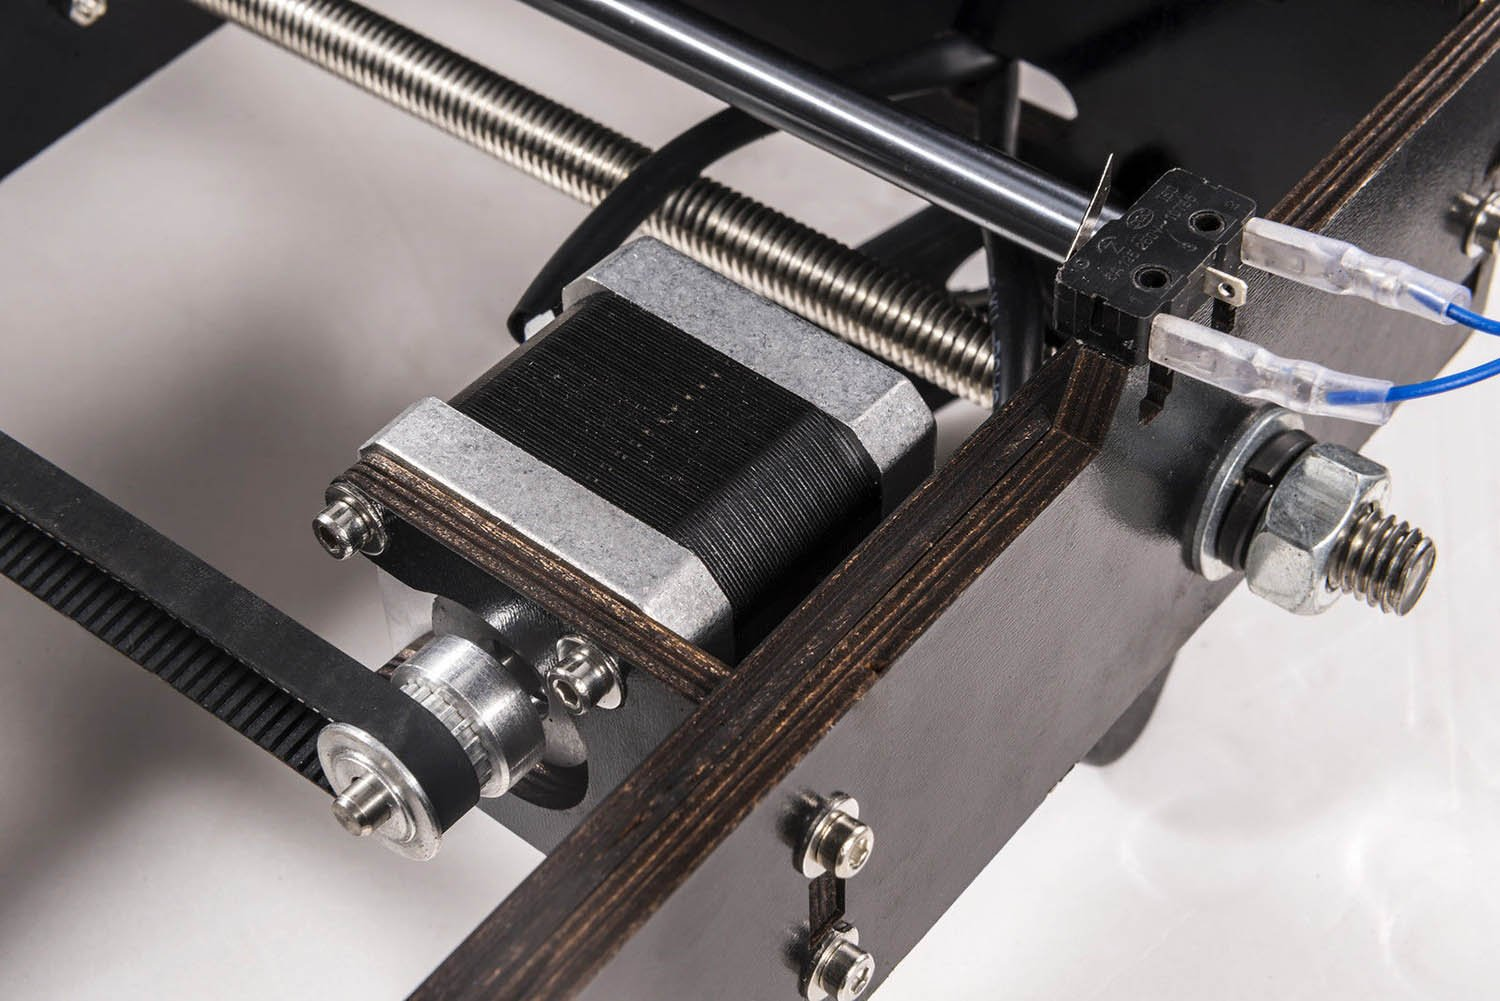 Win-Tinten Upgraded de alta precisión Reprap Prusa i3 DIY 3D ...